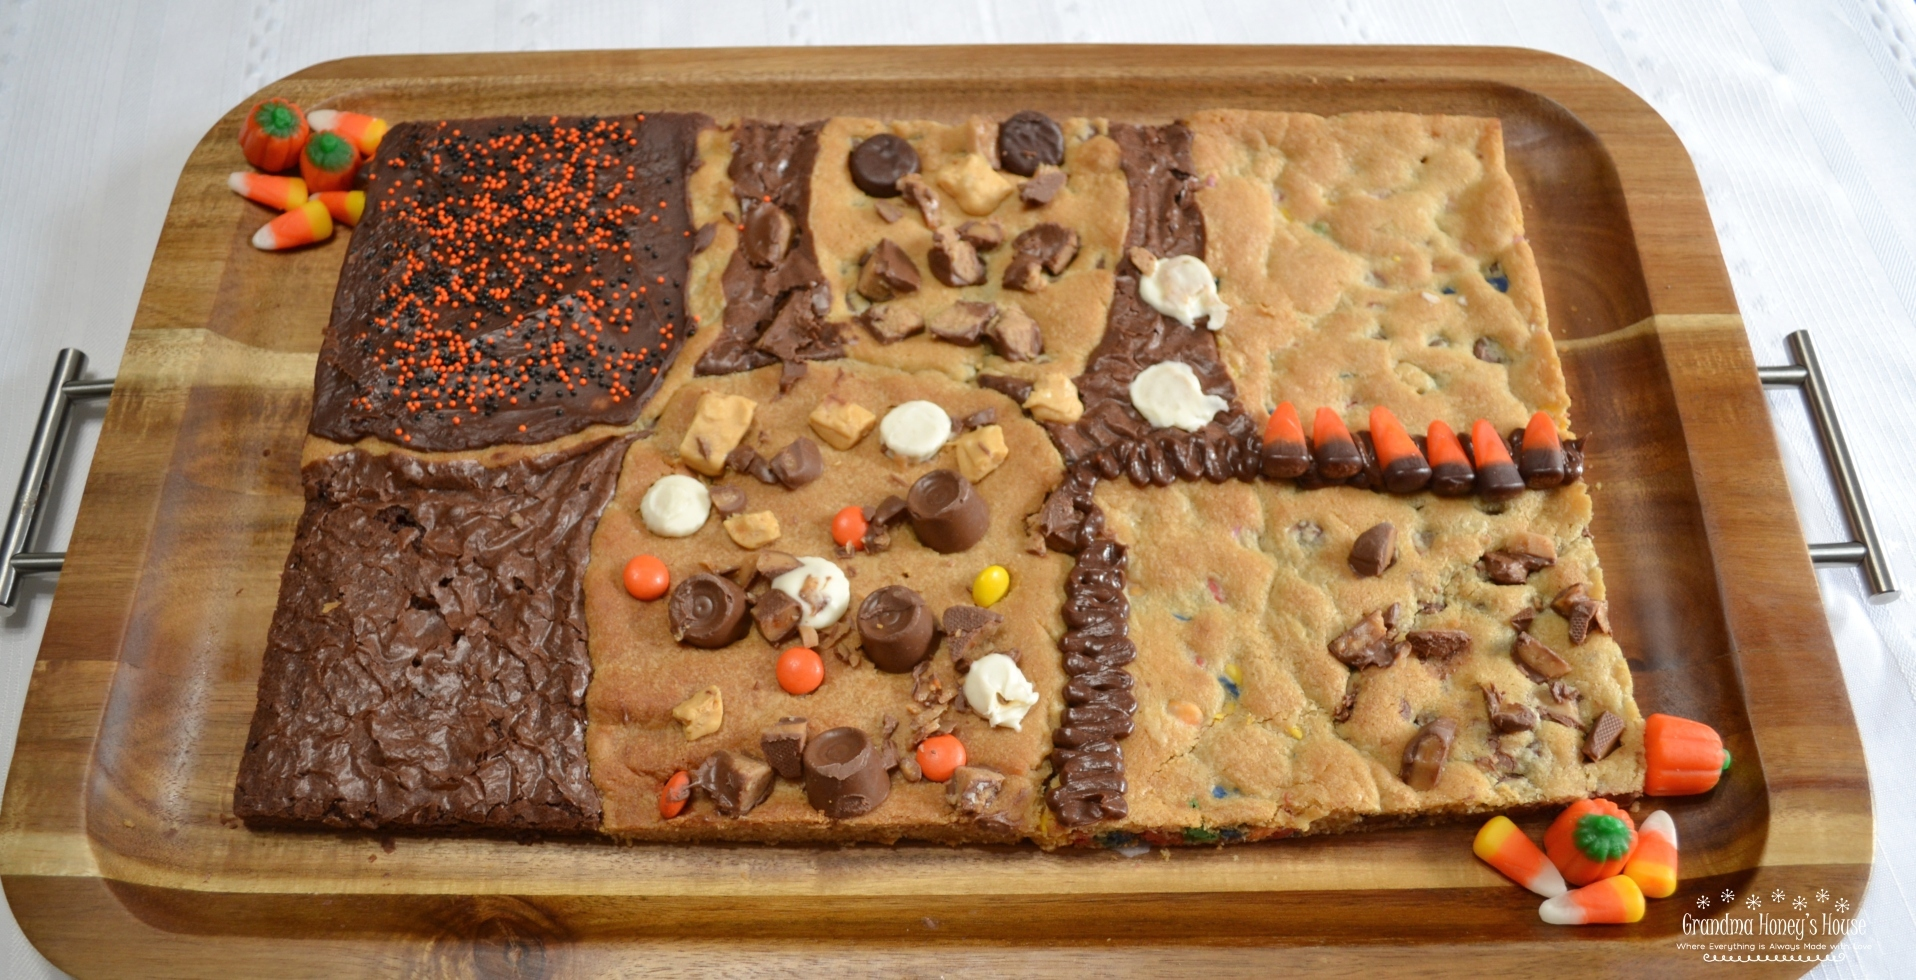 This Halloween Candy Bar Cookie is a mixture of different cookie dough, and brownie mix baked together on a sheet pan. Different candies and chips are added to dough or top the treat.